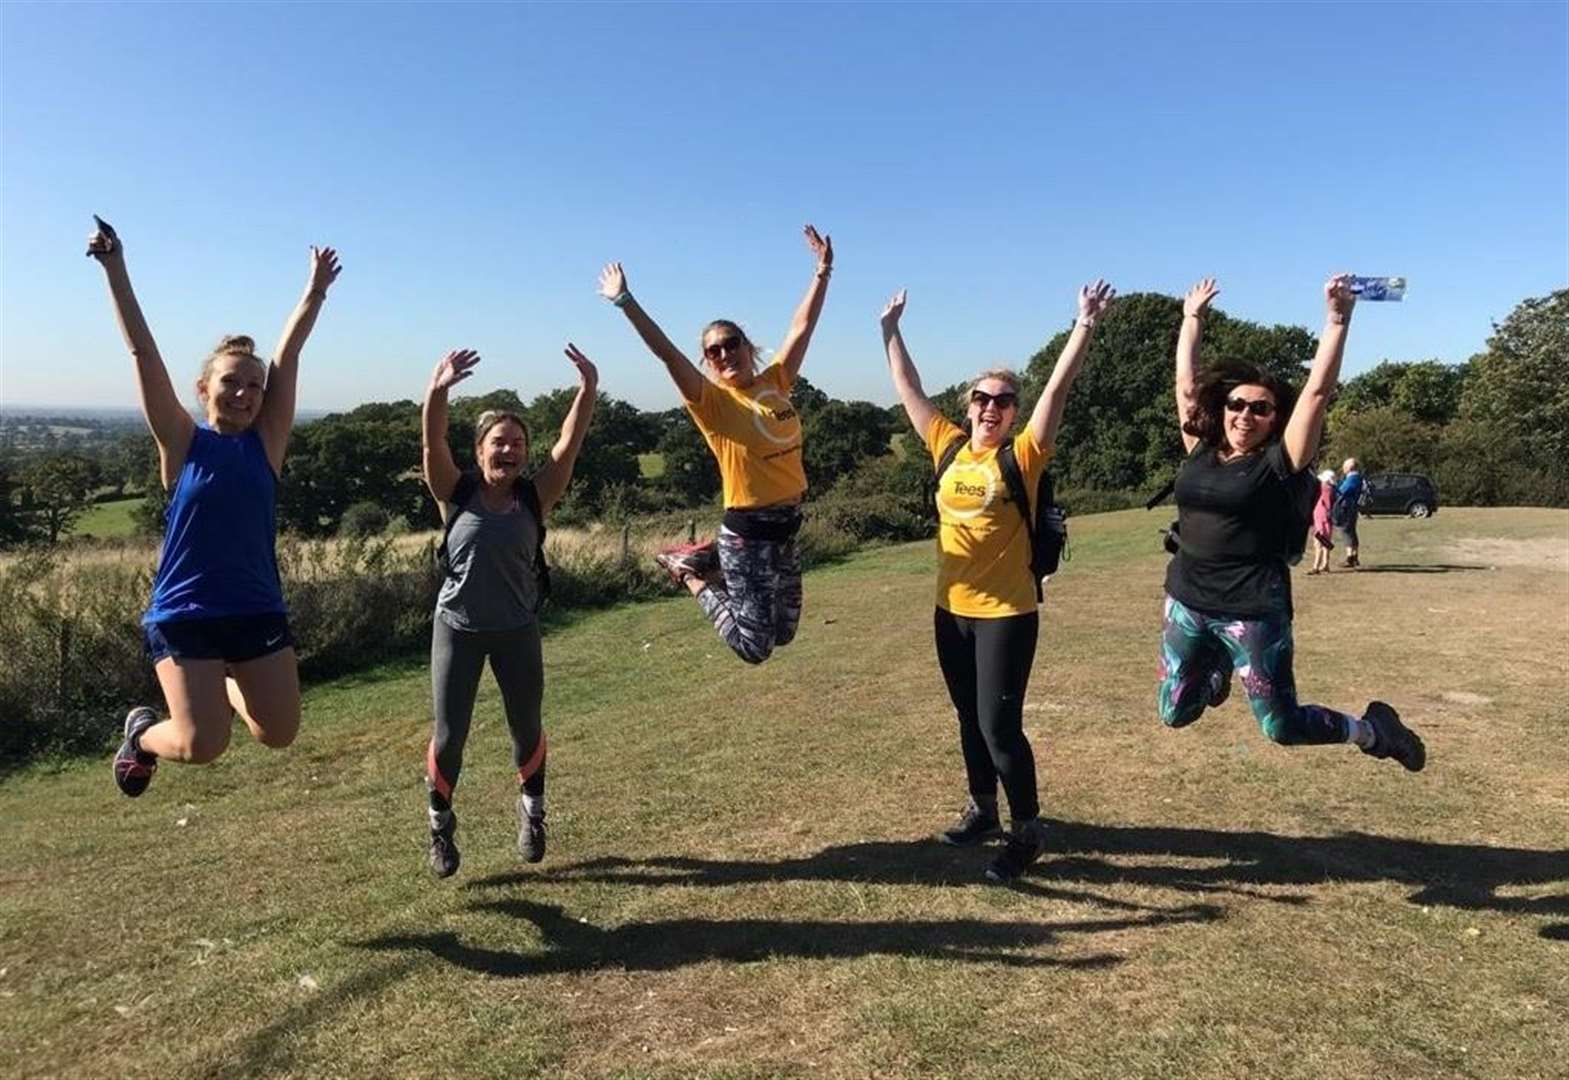 Tees team jumping for joy after London peaks challenge